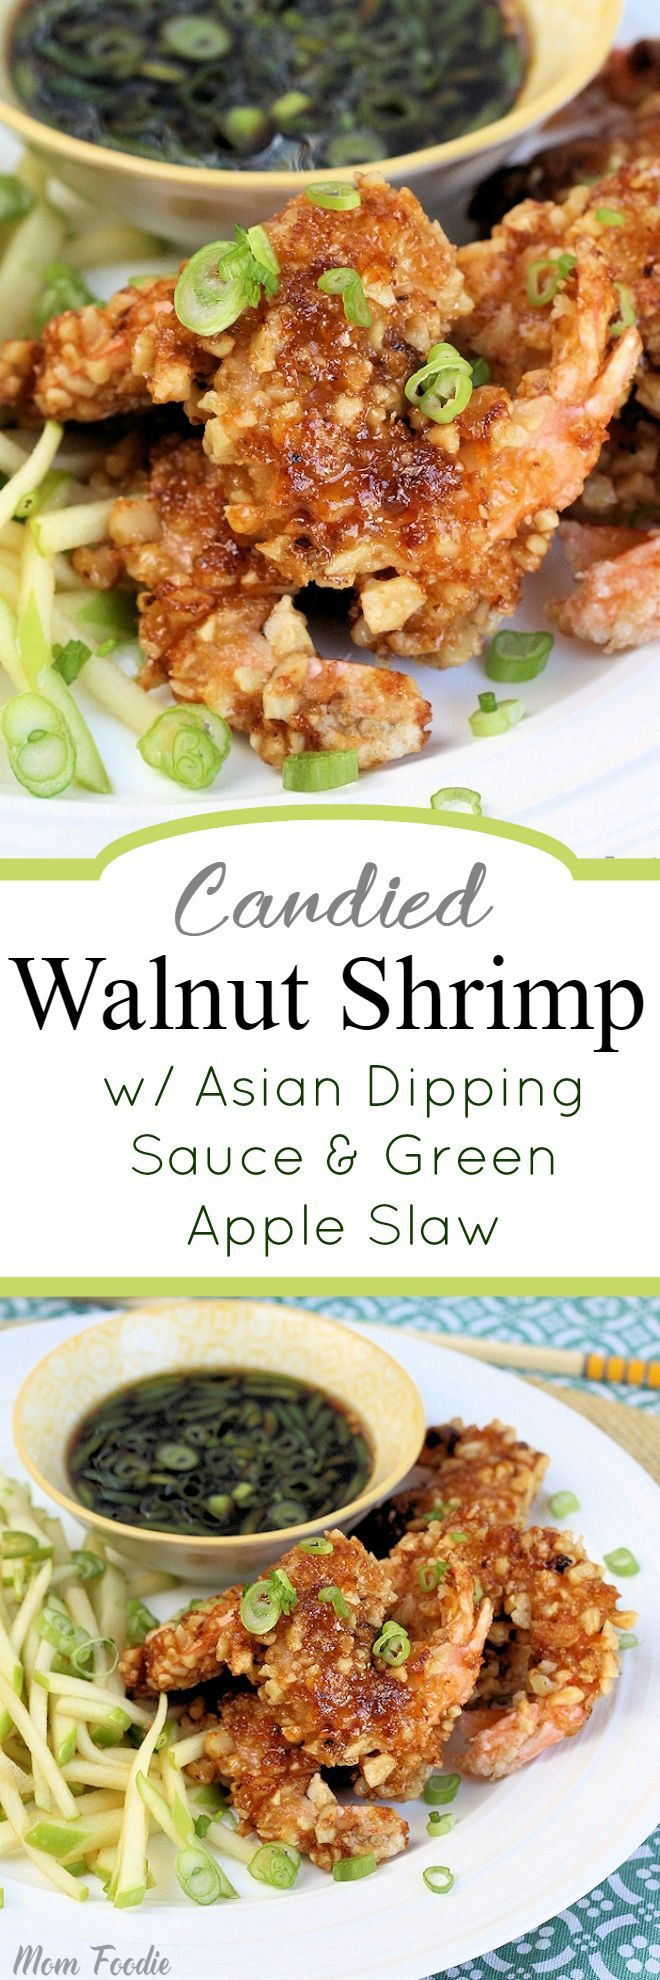 Easy asian dipping sauce recipes